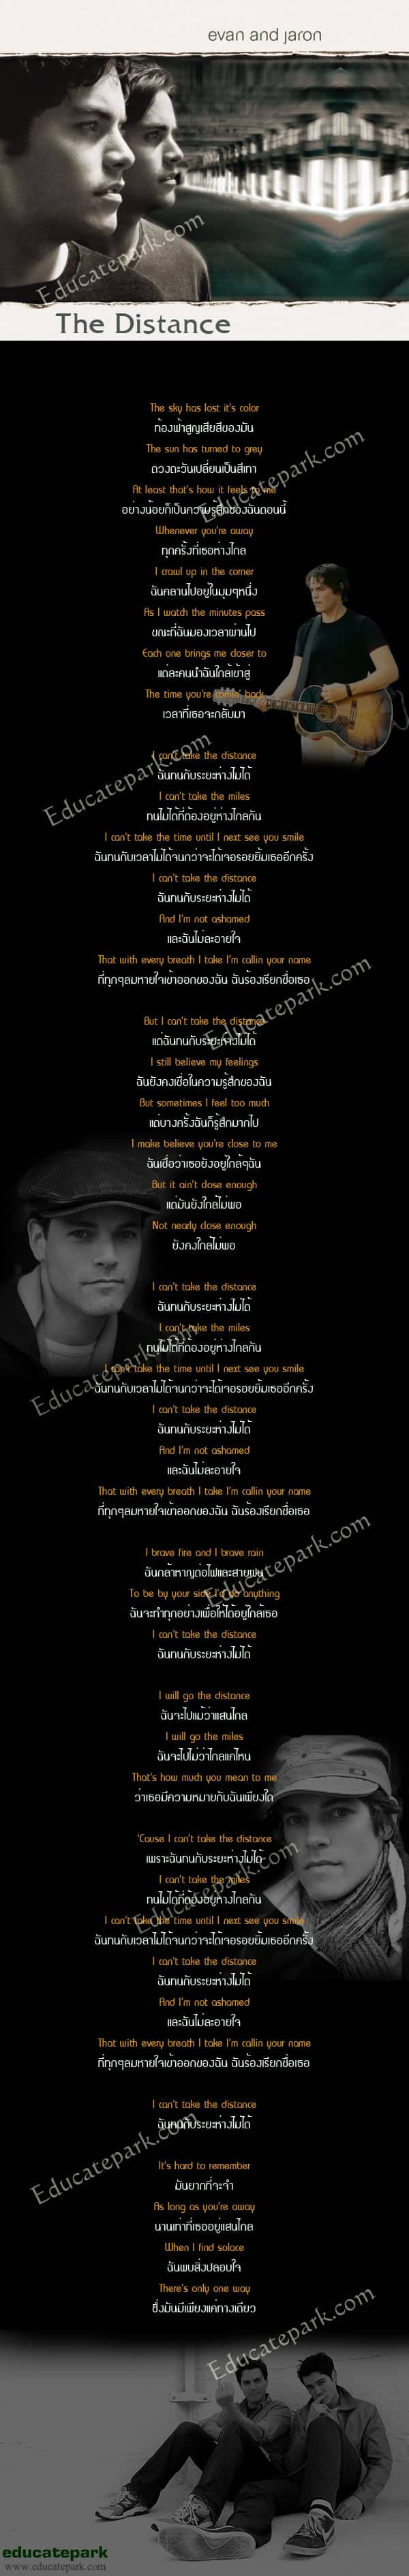 แปลเพลง The Distance - Evan and Jaron